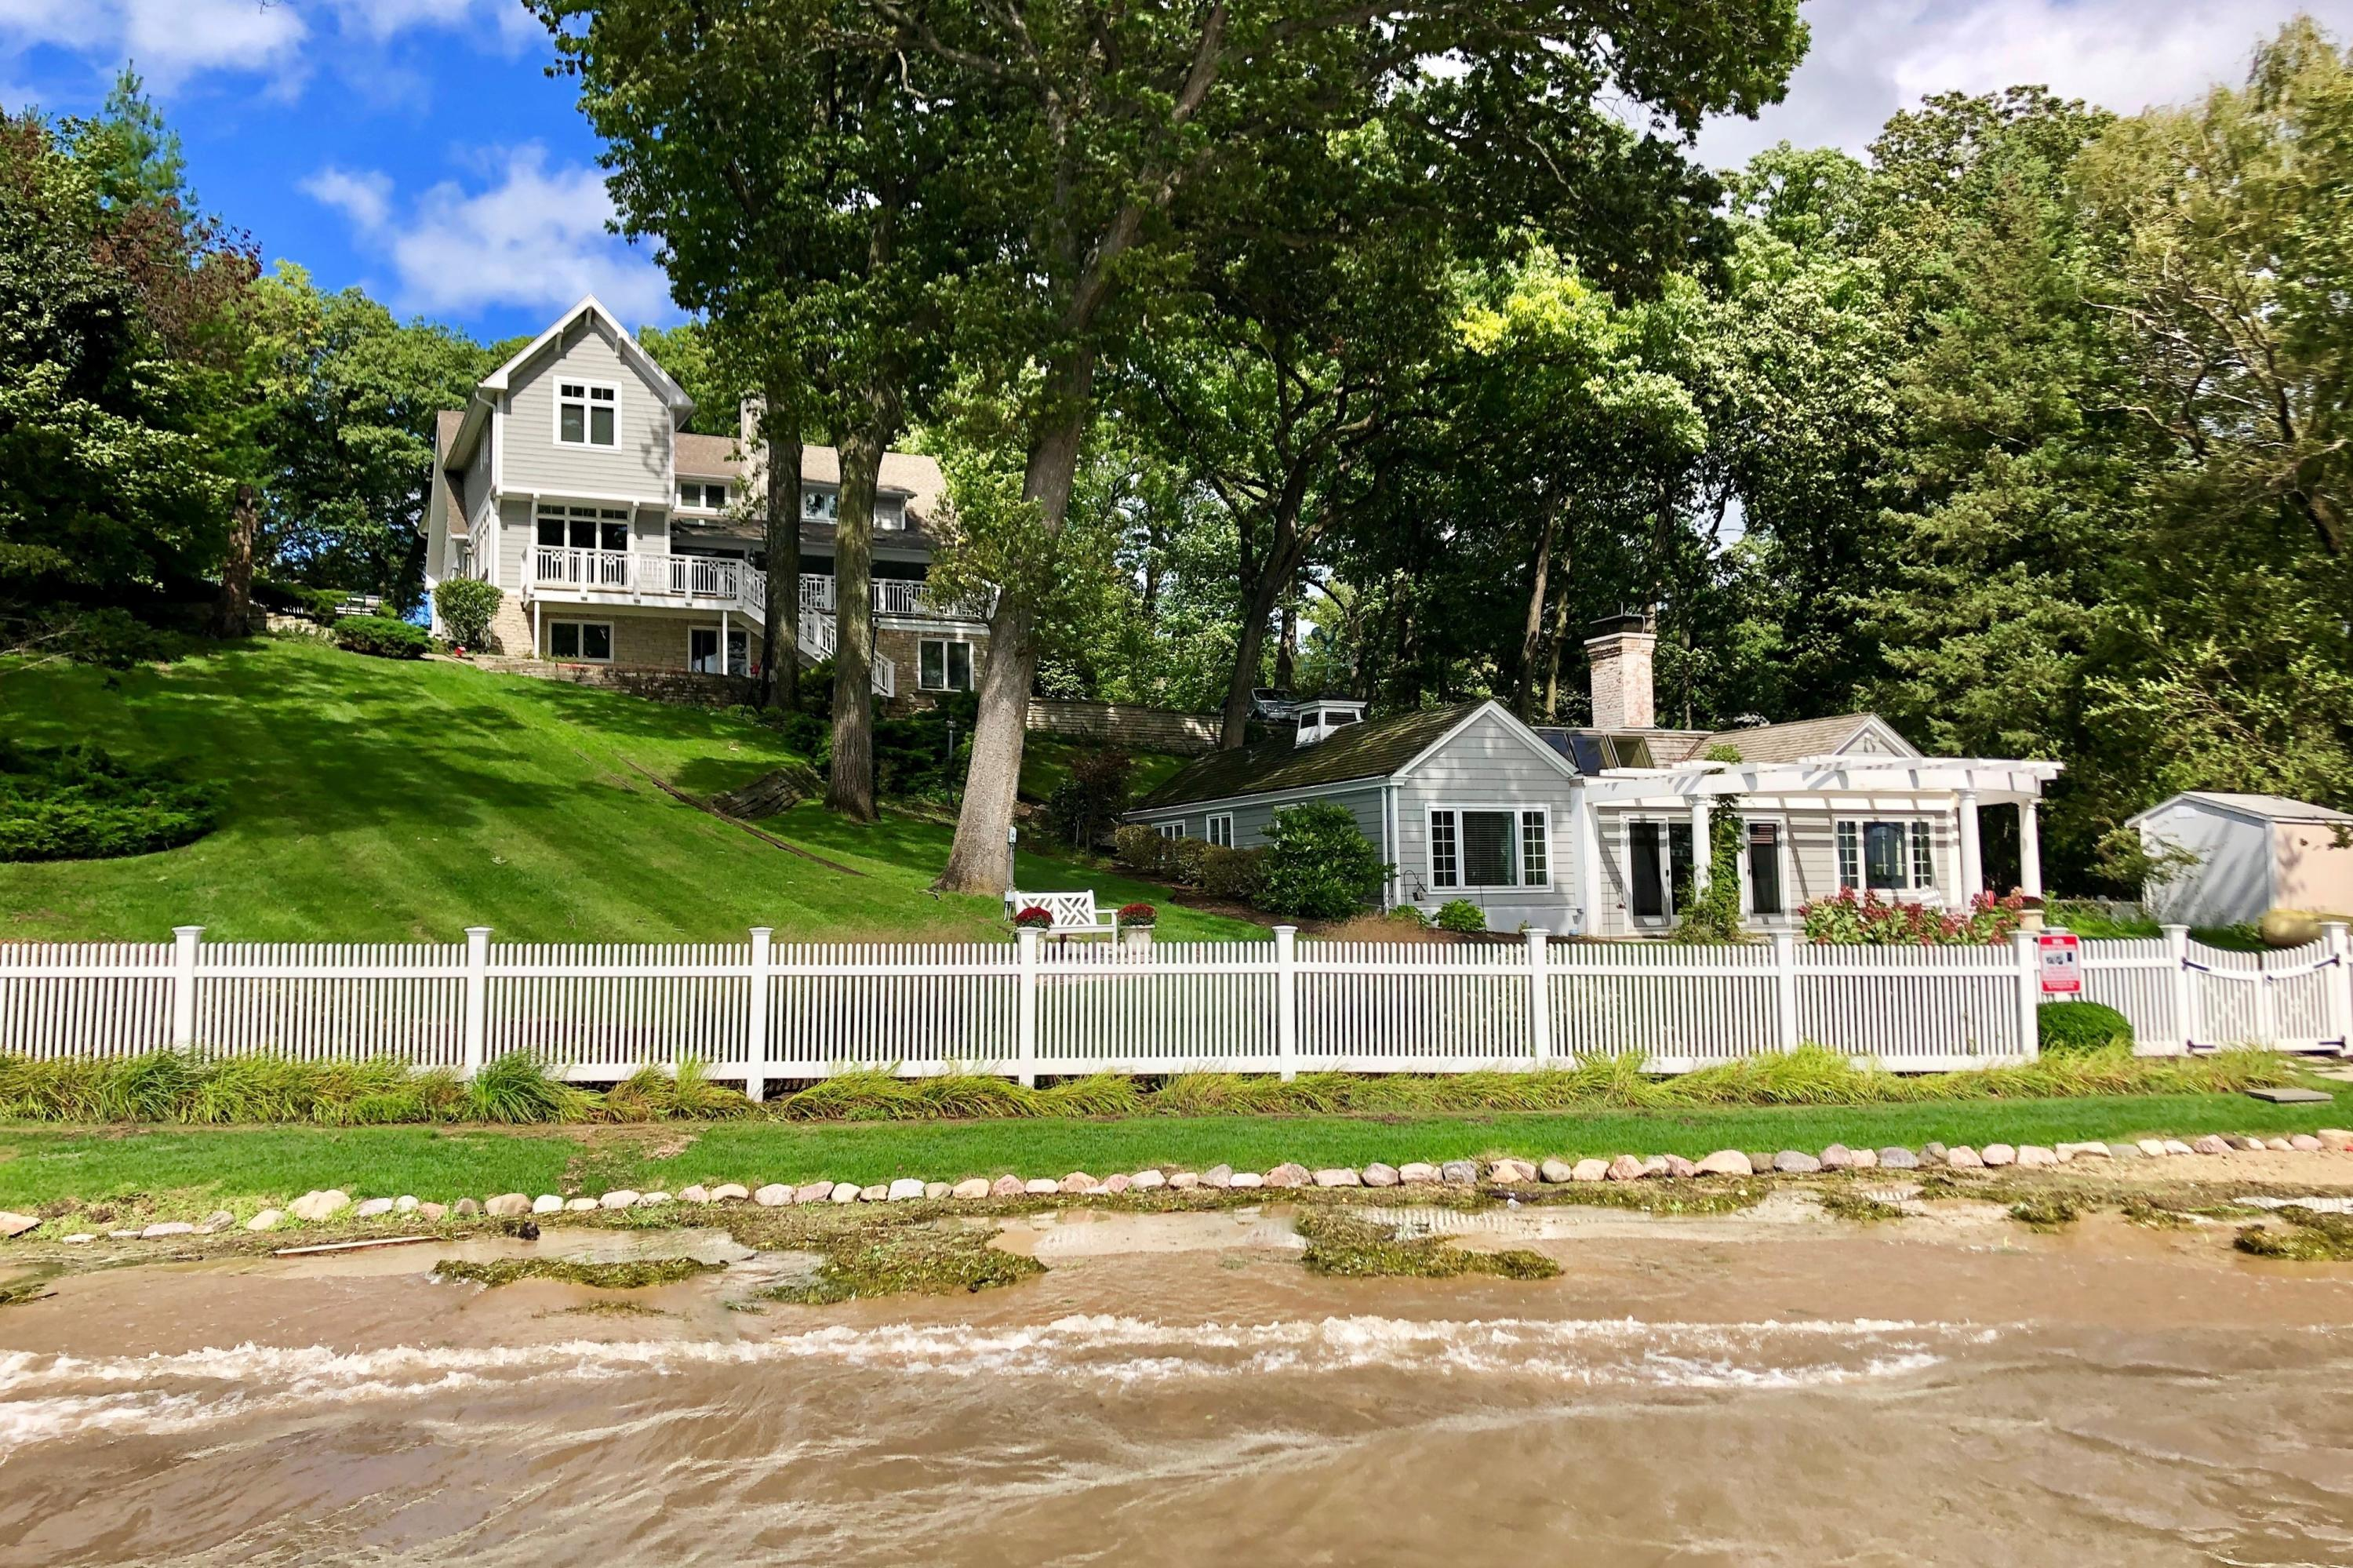 Photo of 154 Wood St, Williams Bay, WI 53191